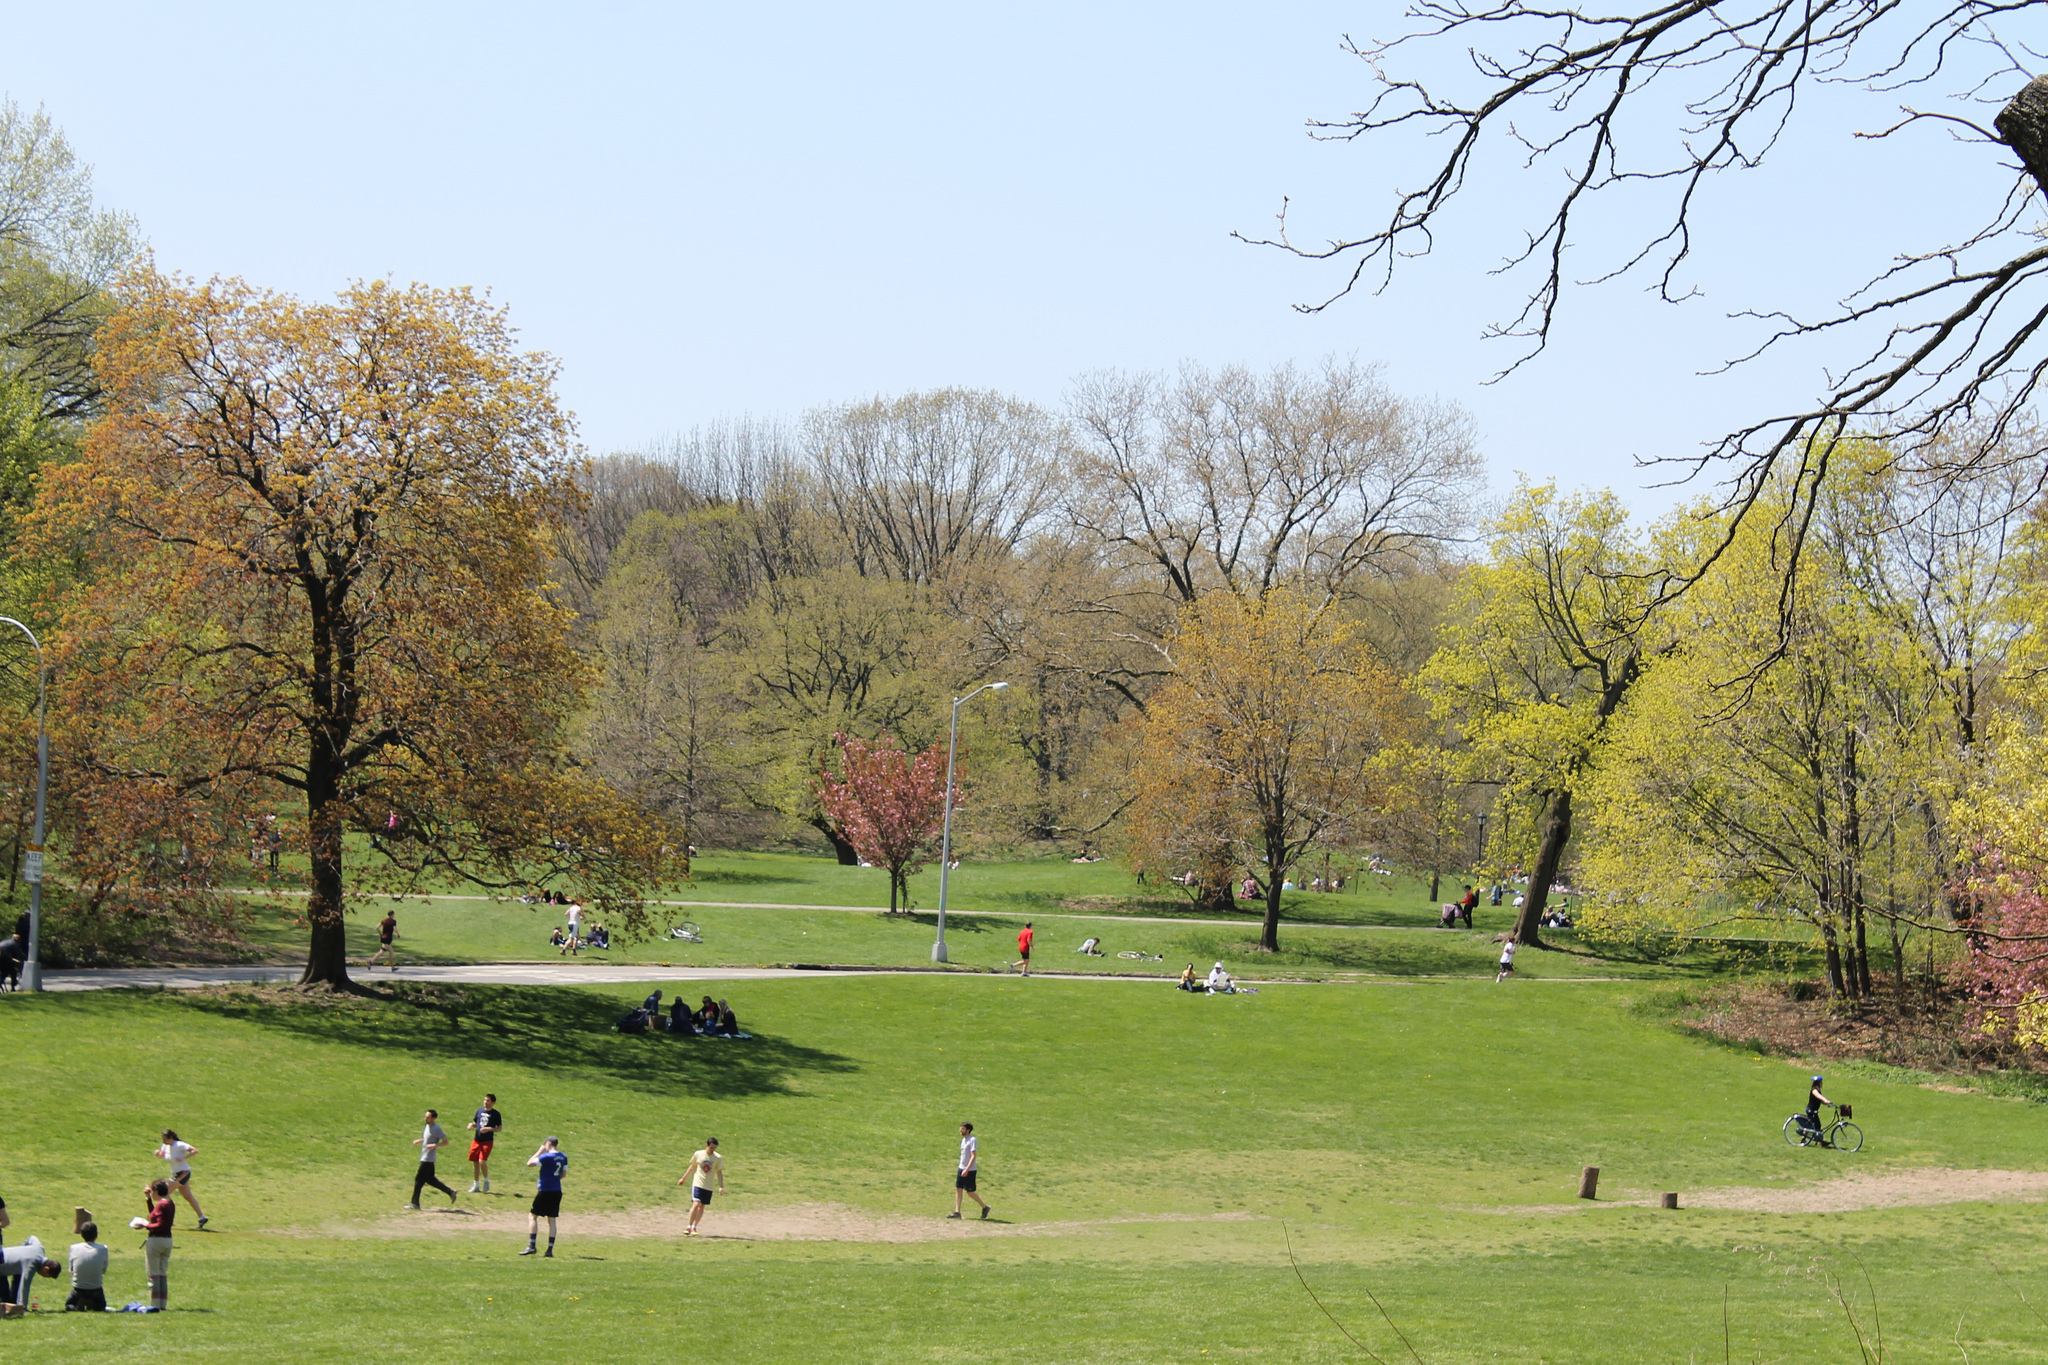 Cars will be banned from Prospect Park for the first time ever this summer